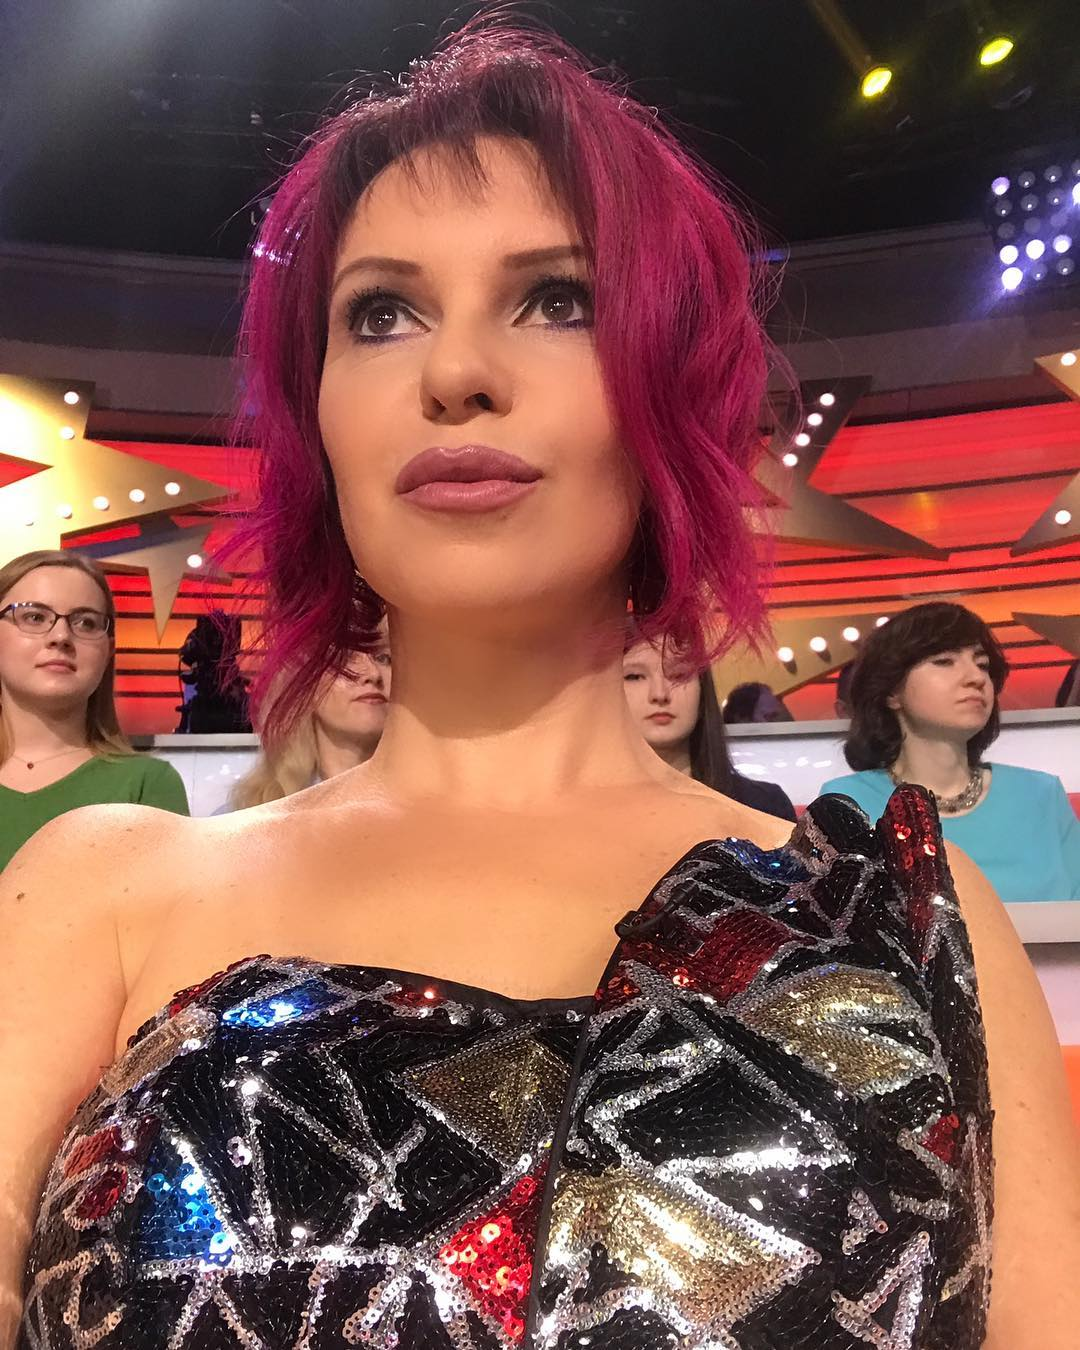 Natalya Shturm complained about her son who does not communicate with her